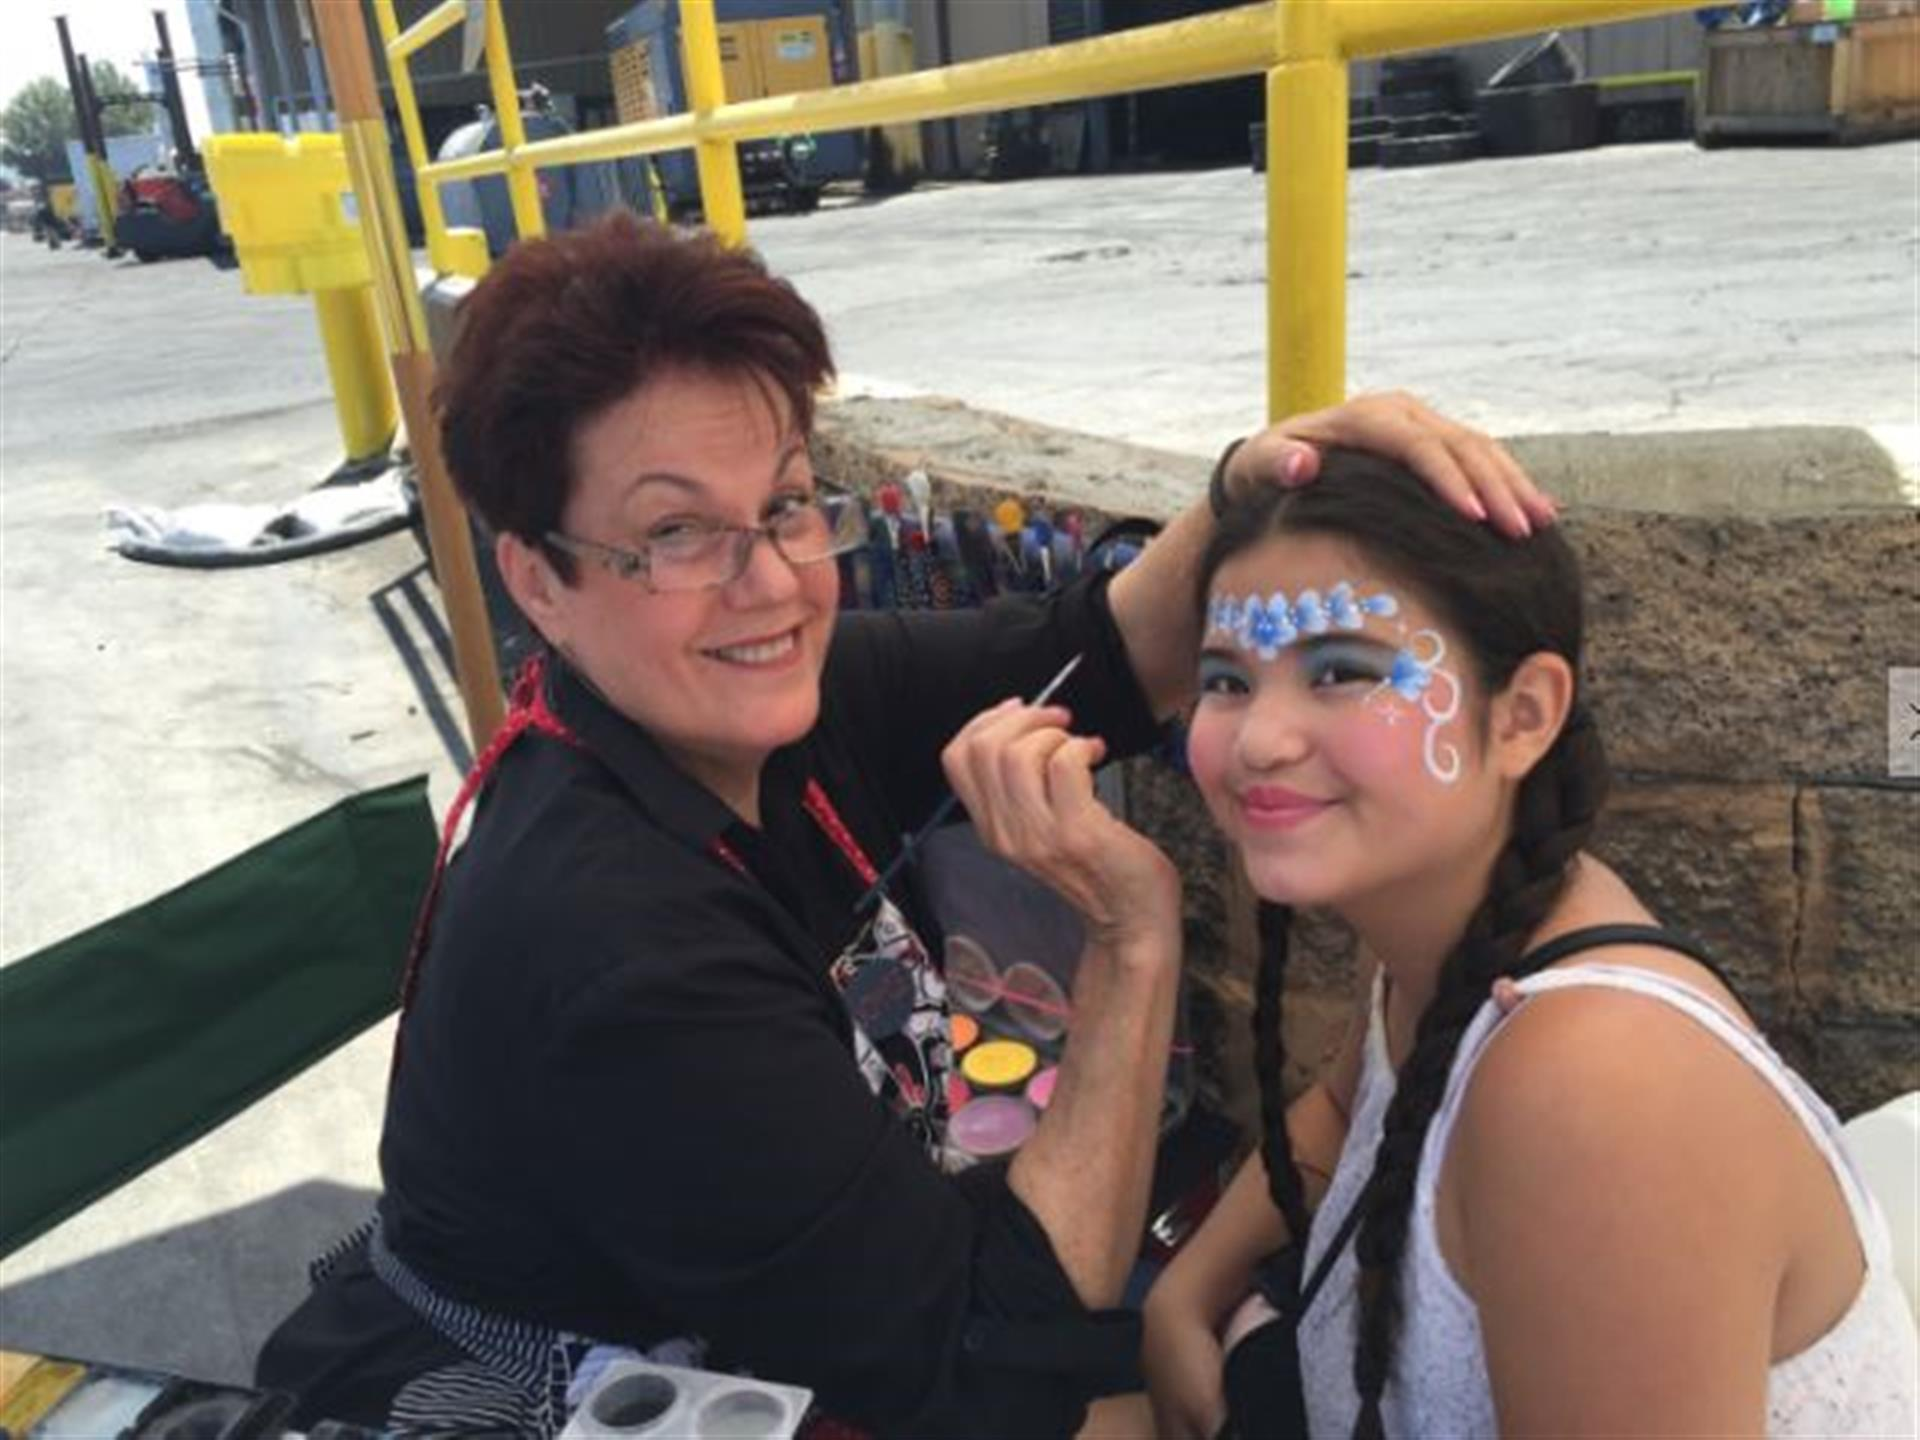 Girl getting her face painted by female artist